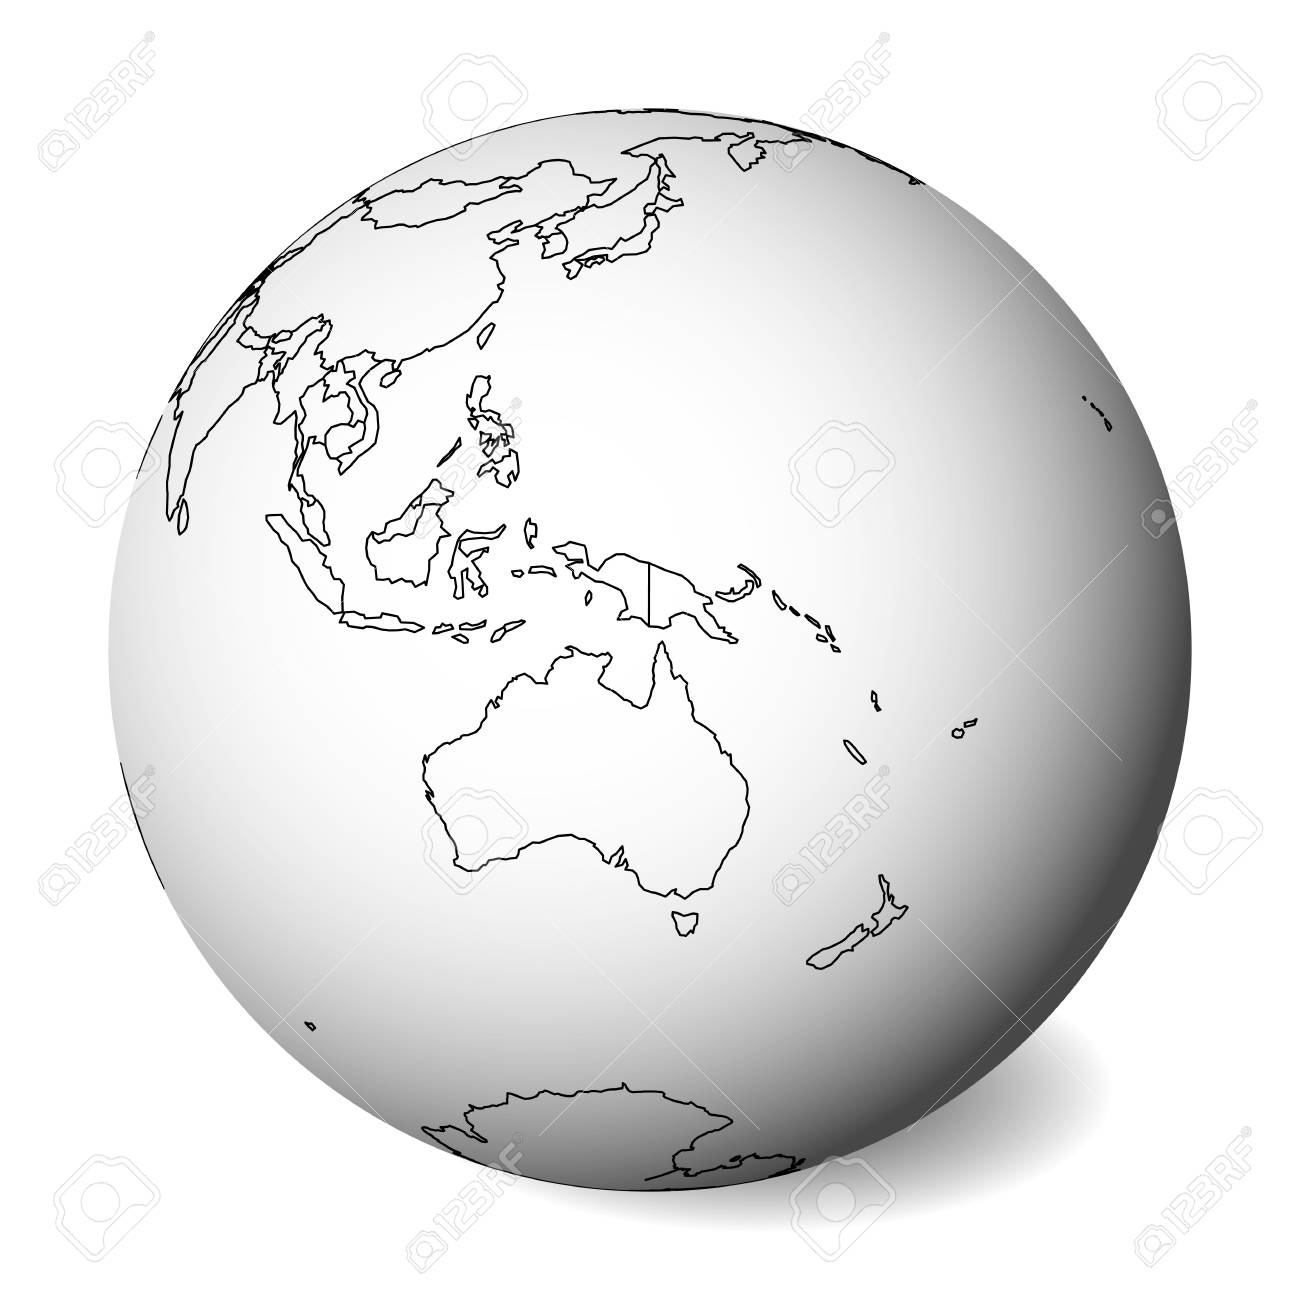 Map Of Australia Blank.Blank Political Map Of Australia 3d Earth Globe With Black Outline